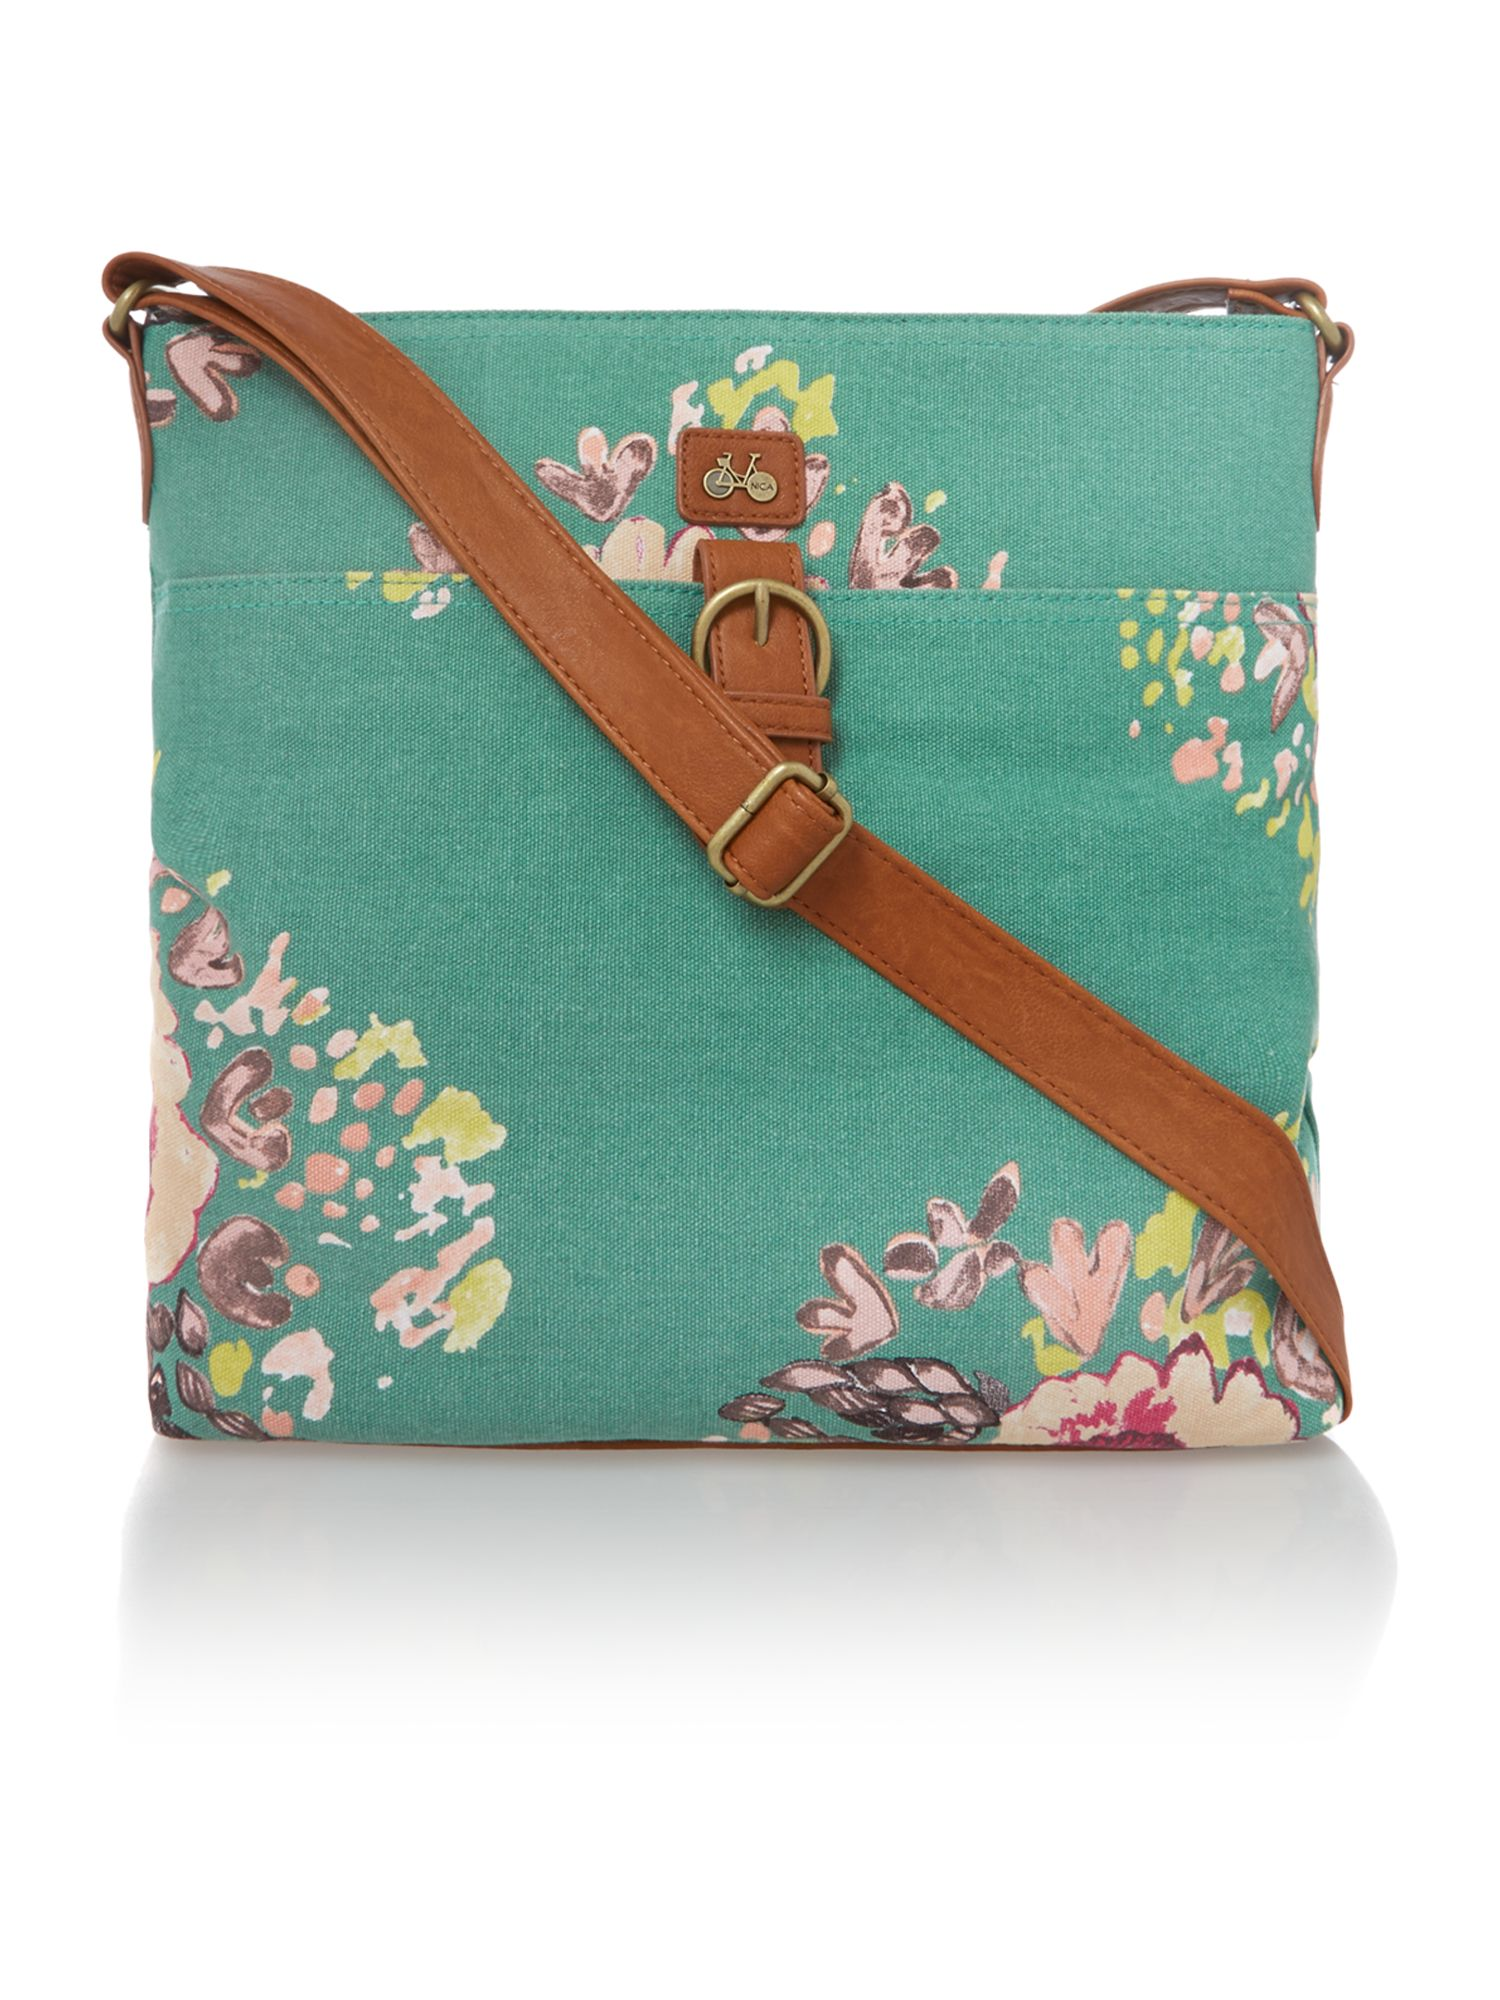 Cara green cross body bag